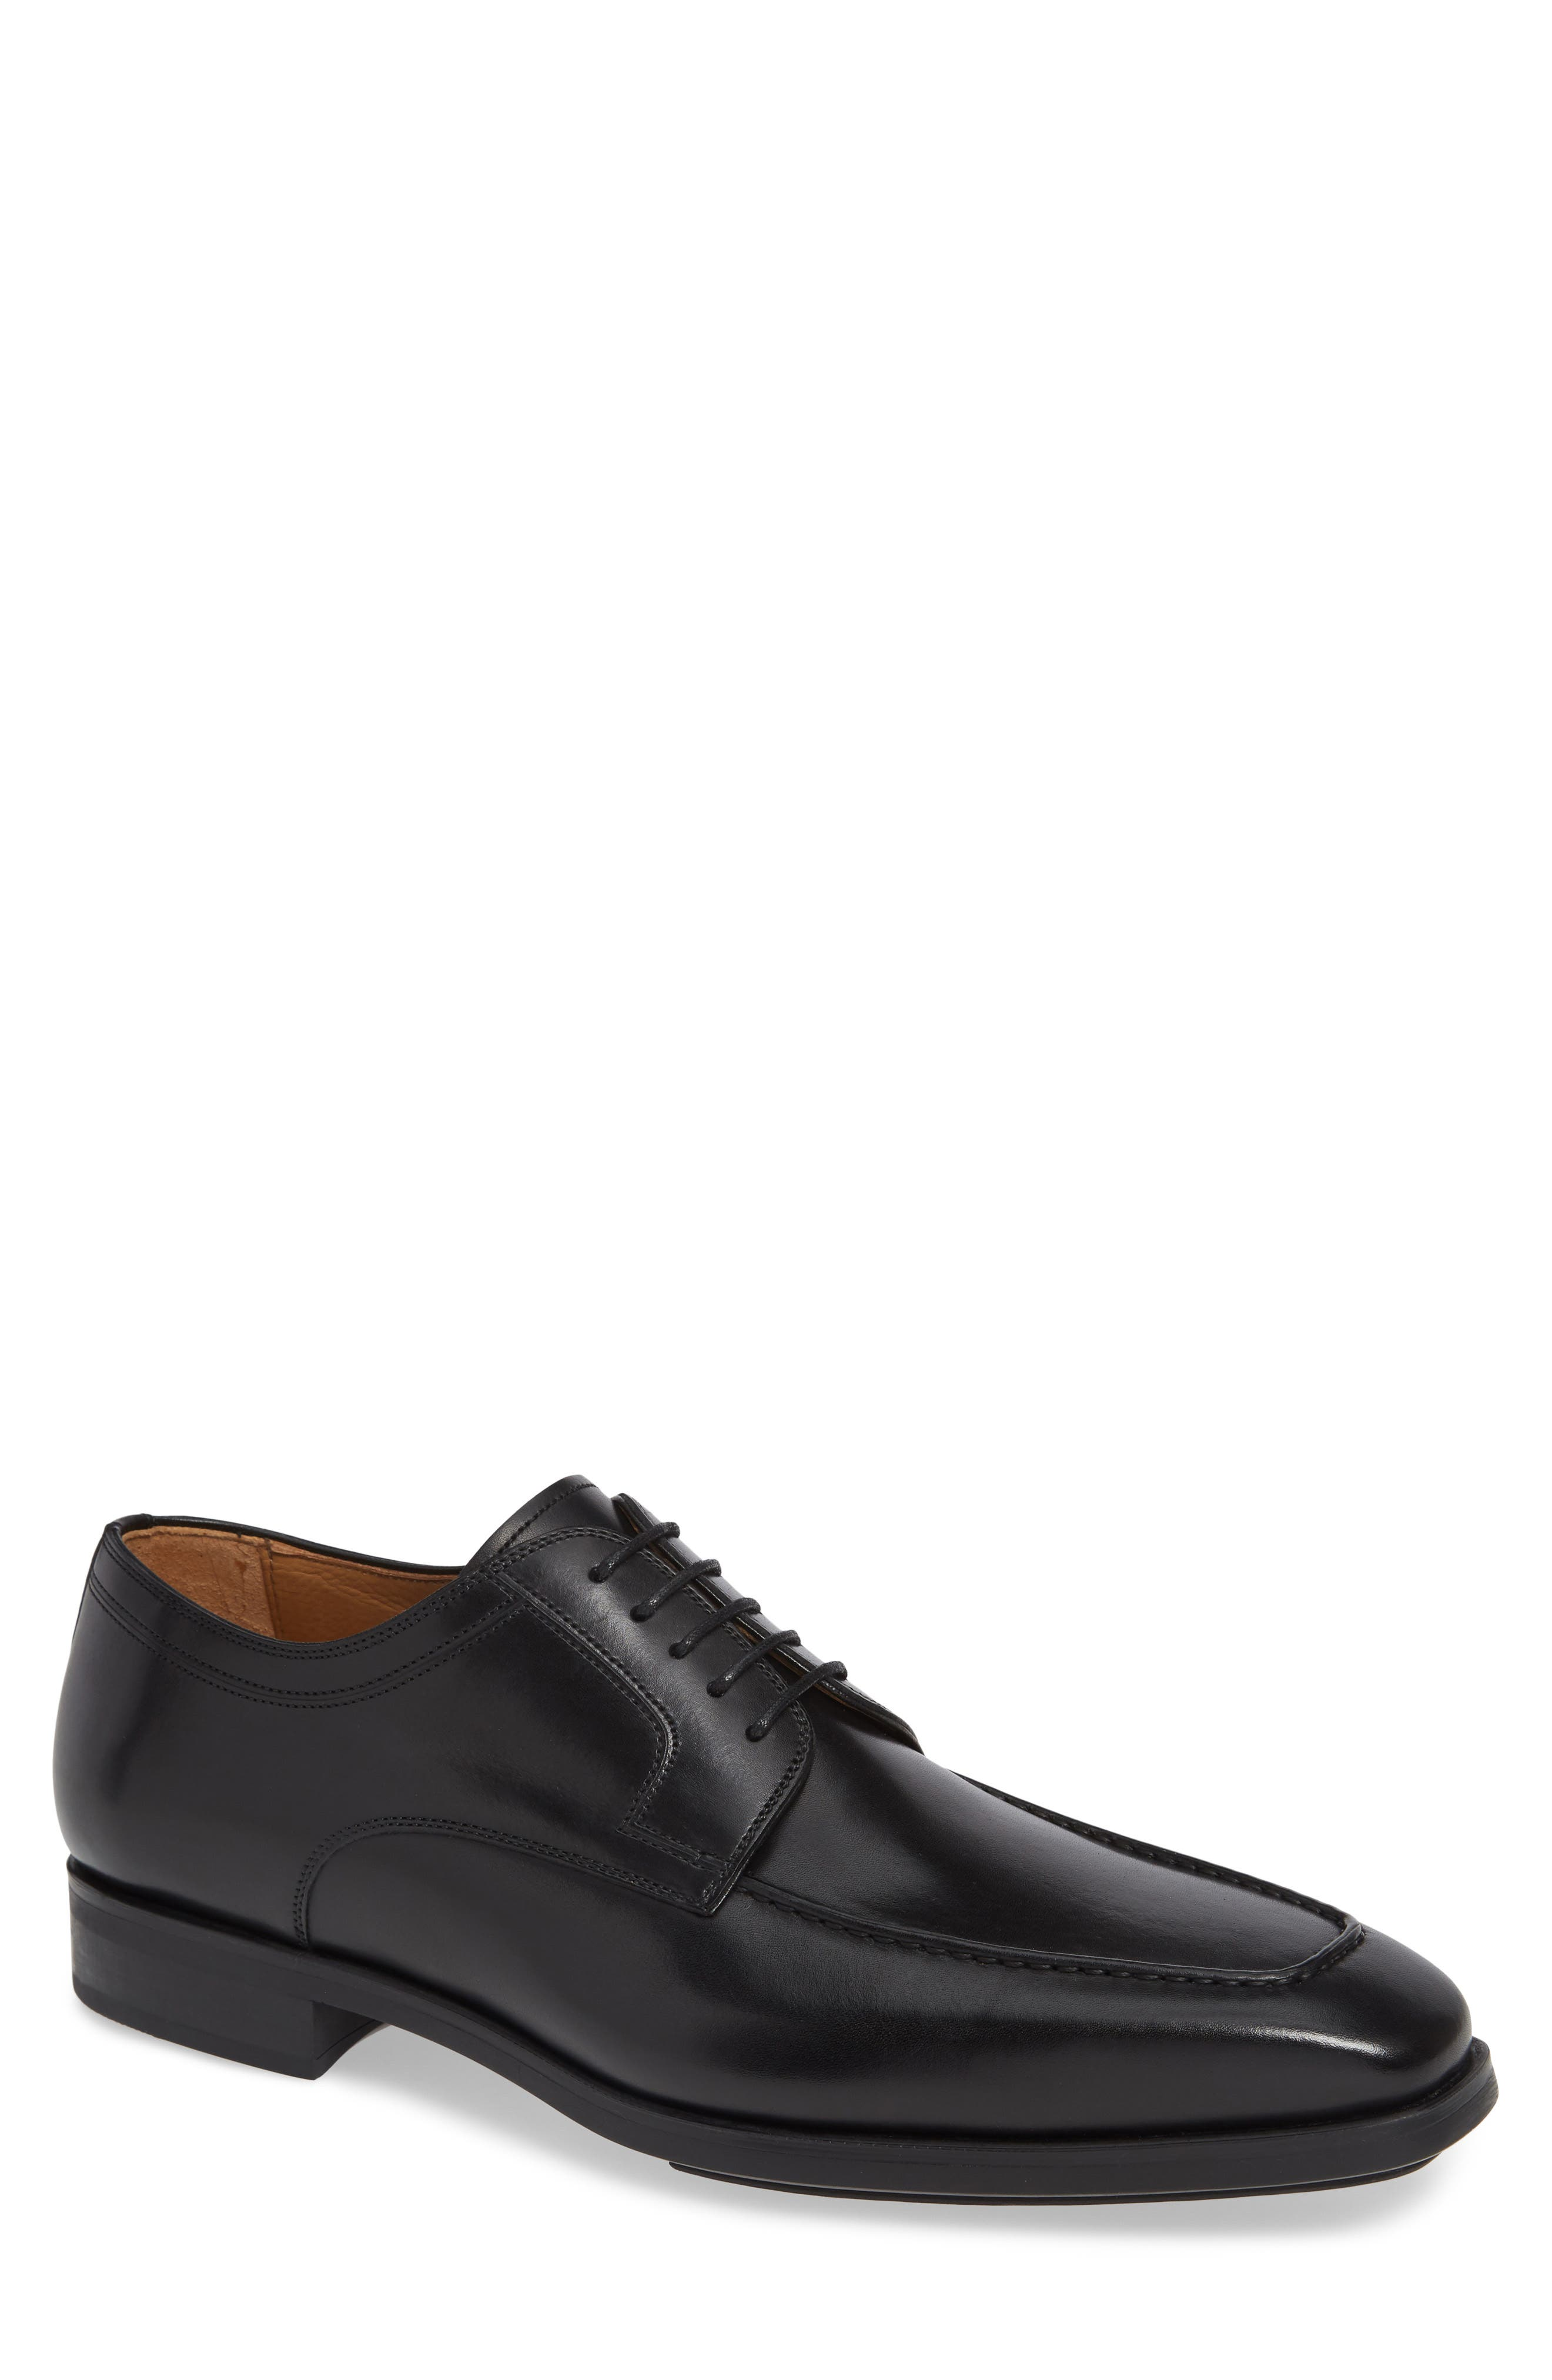 MAGNANNI,                             Diversa Romelo Apron Toe Derby,                             Main thumbnail 1, color,                             BLACK LEATHER